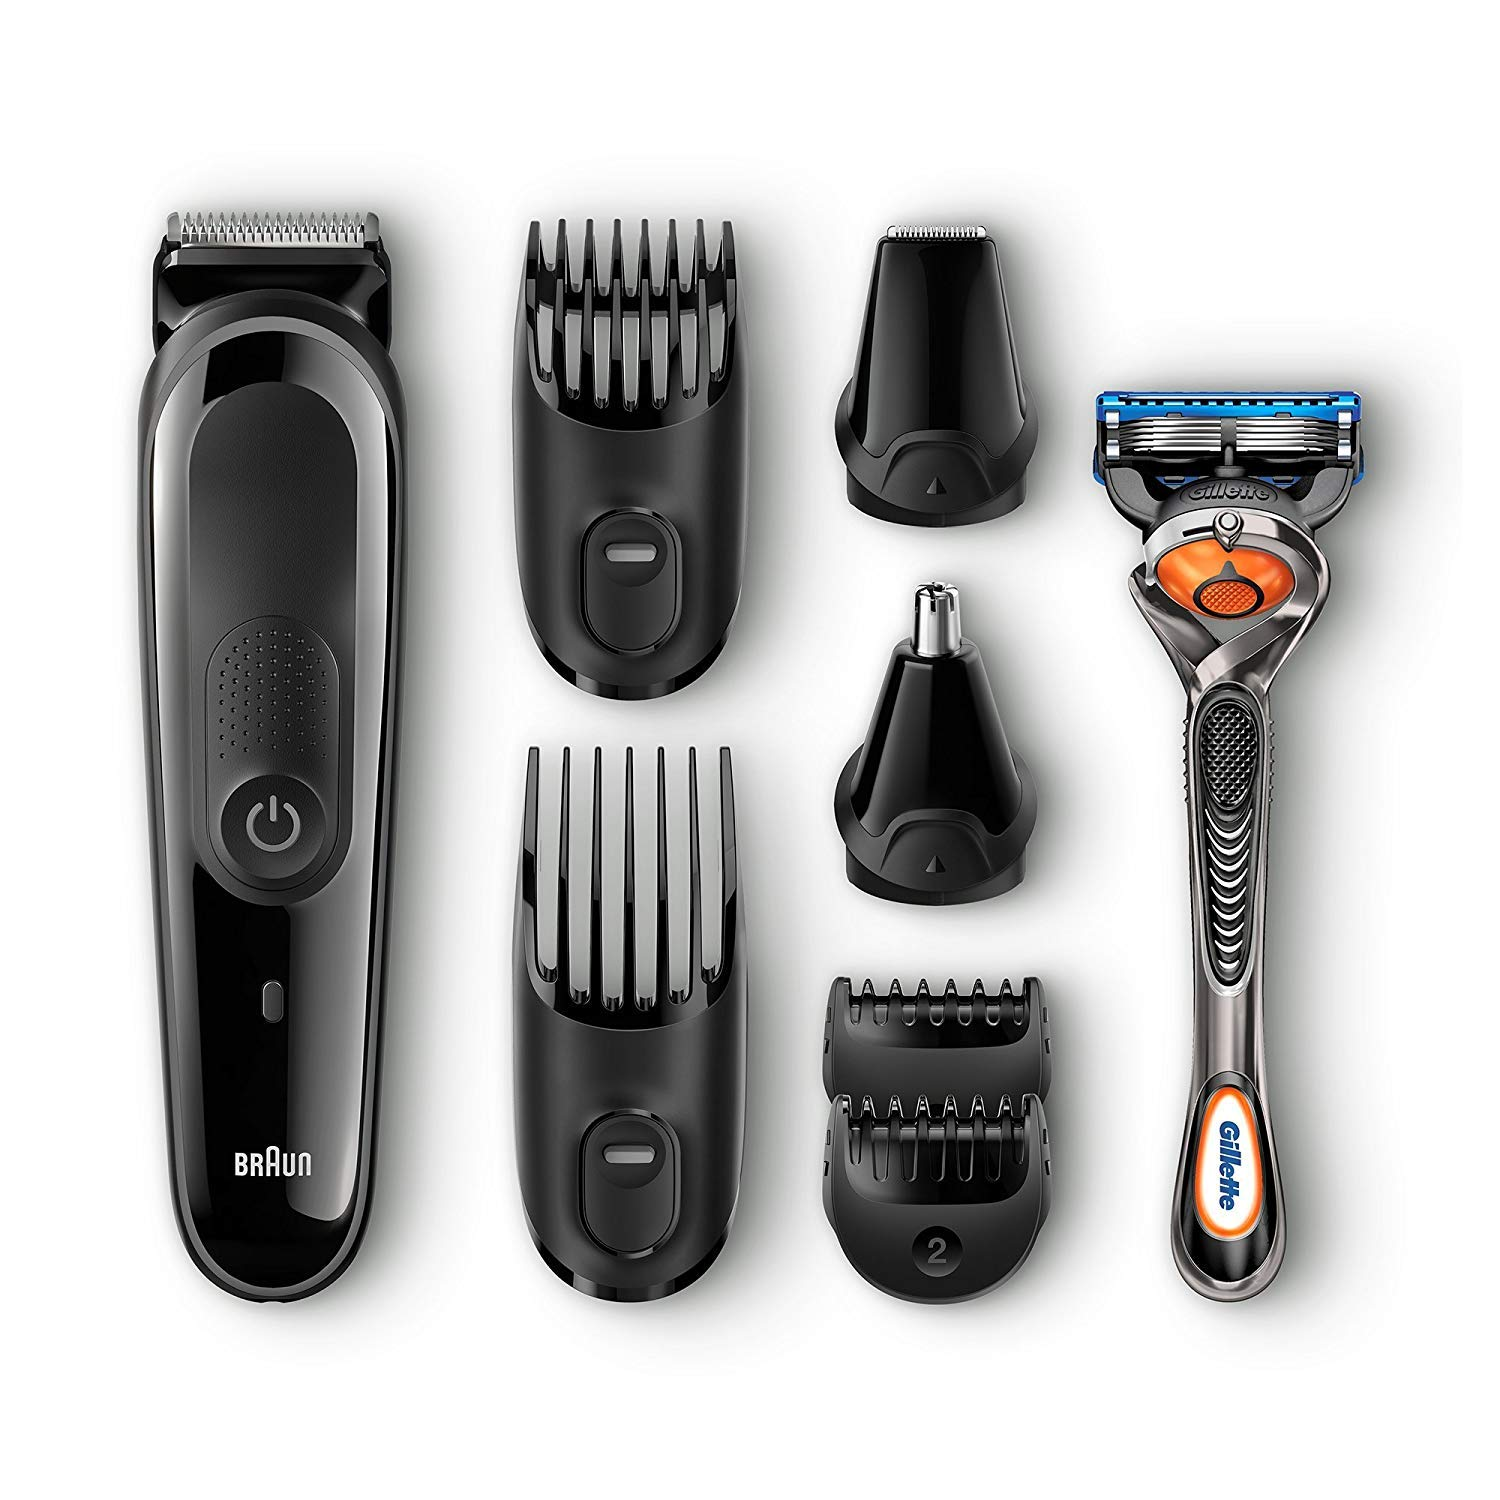 Braun All-in-One Corded/Cordless Universal Voltage Multi-groom Turbo-Powered Beard Hair & Ear & Nose Trimmer Grooming Kit Plus Cube Travel Hard Protective Carrying Case Pouch